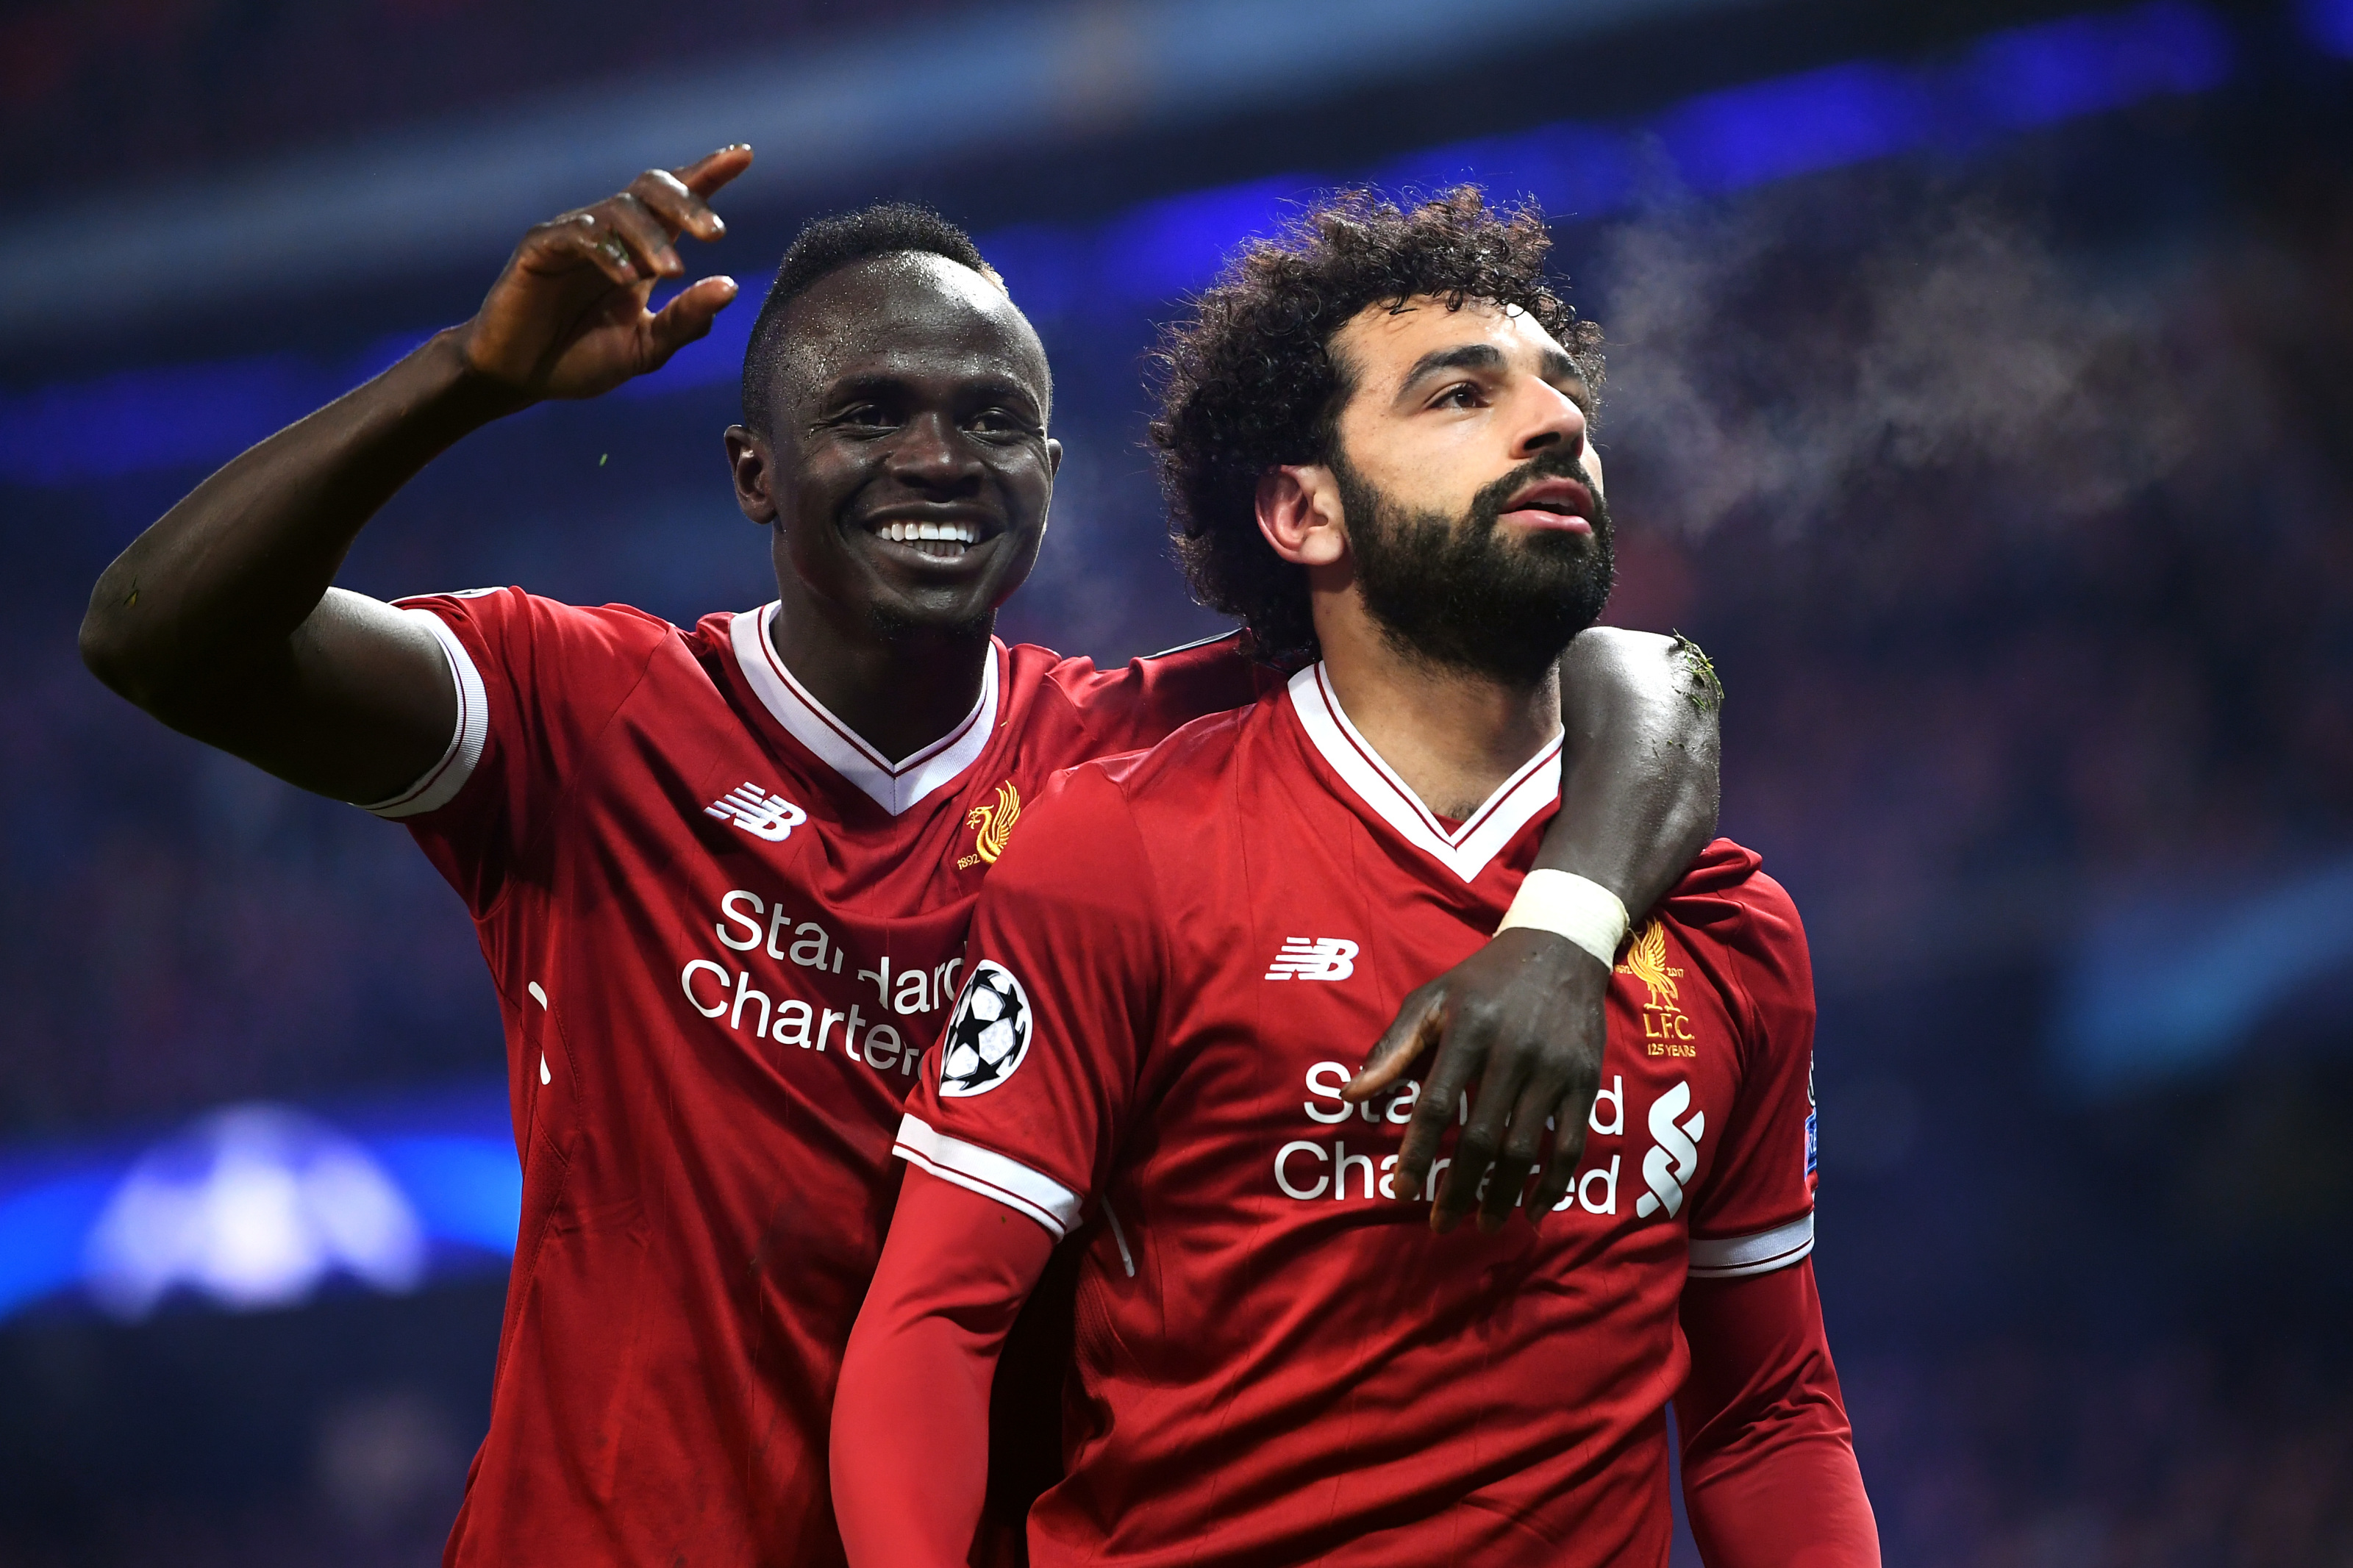 Liverpool: Sadio Mane could reach the heights Mohamed Salah set